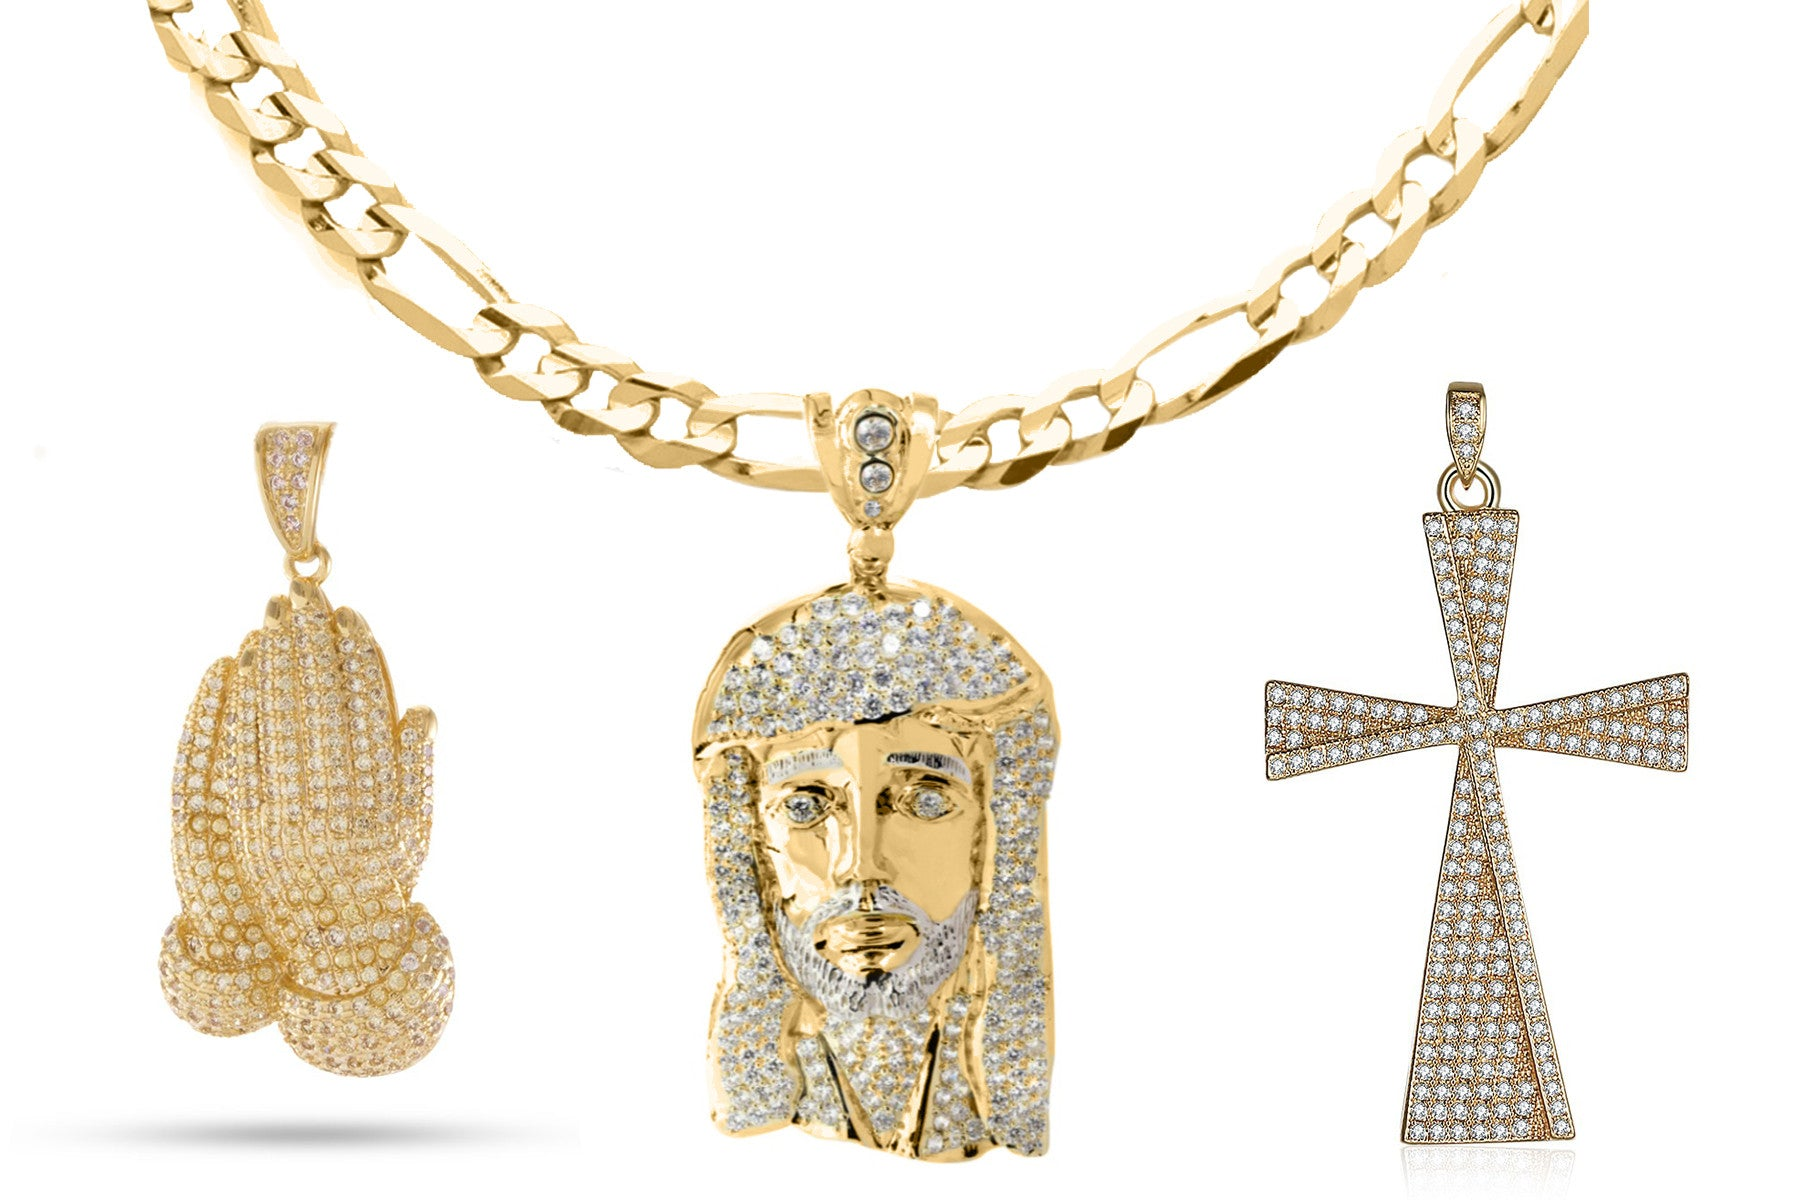 18K Gold Plated Religious Cross Set - Fiagro Necklace + 3 Pendants Set 2 - CharmToSpare